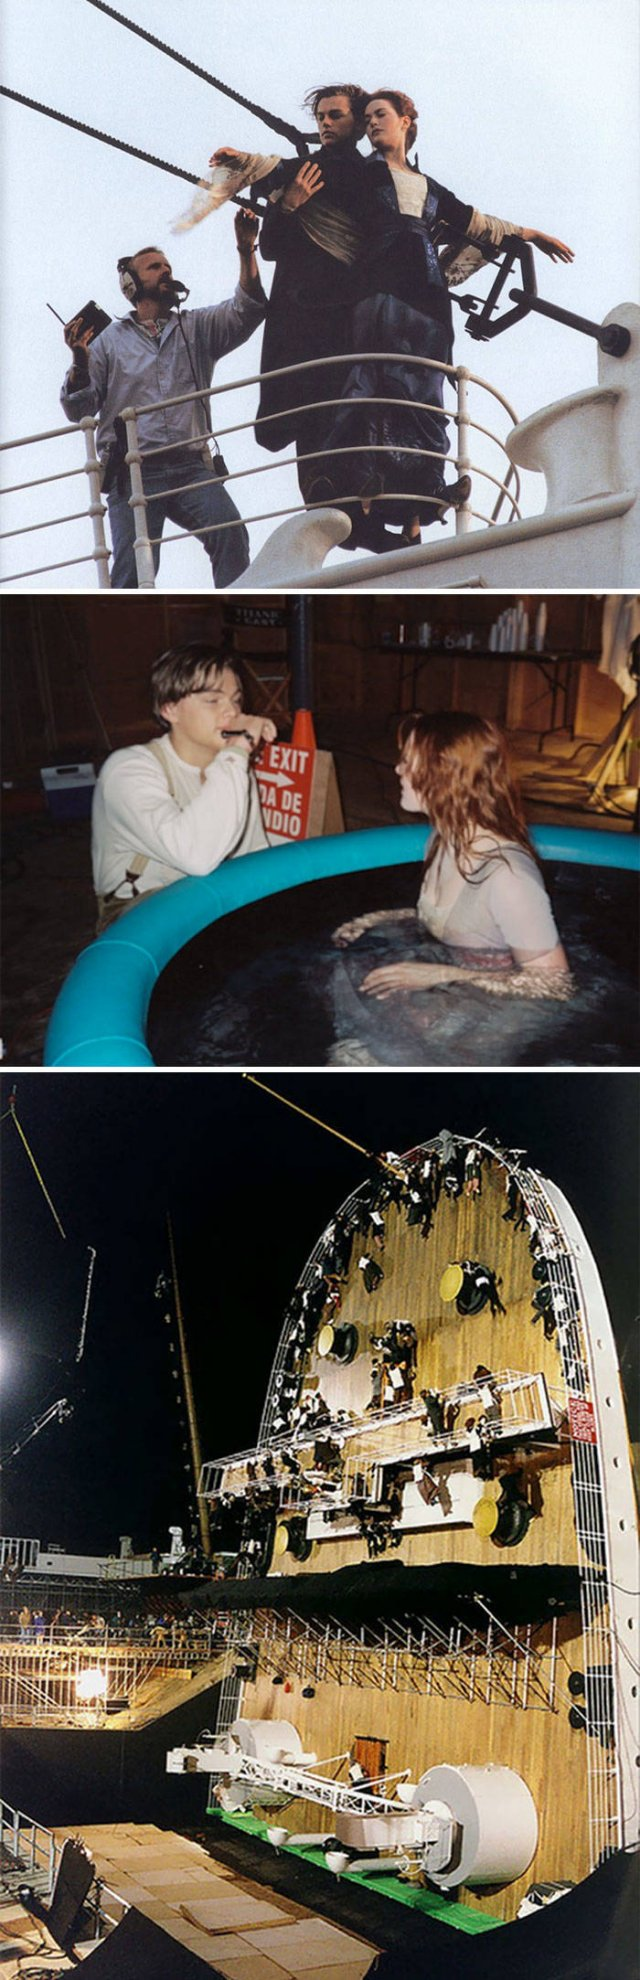 Behind The Scenes Of Famous Movies, part 3